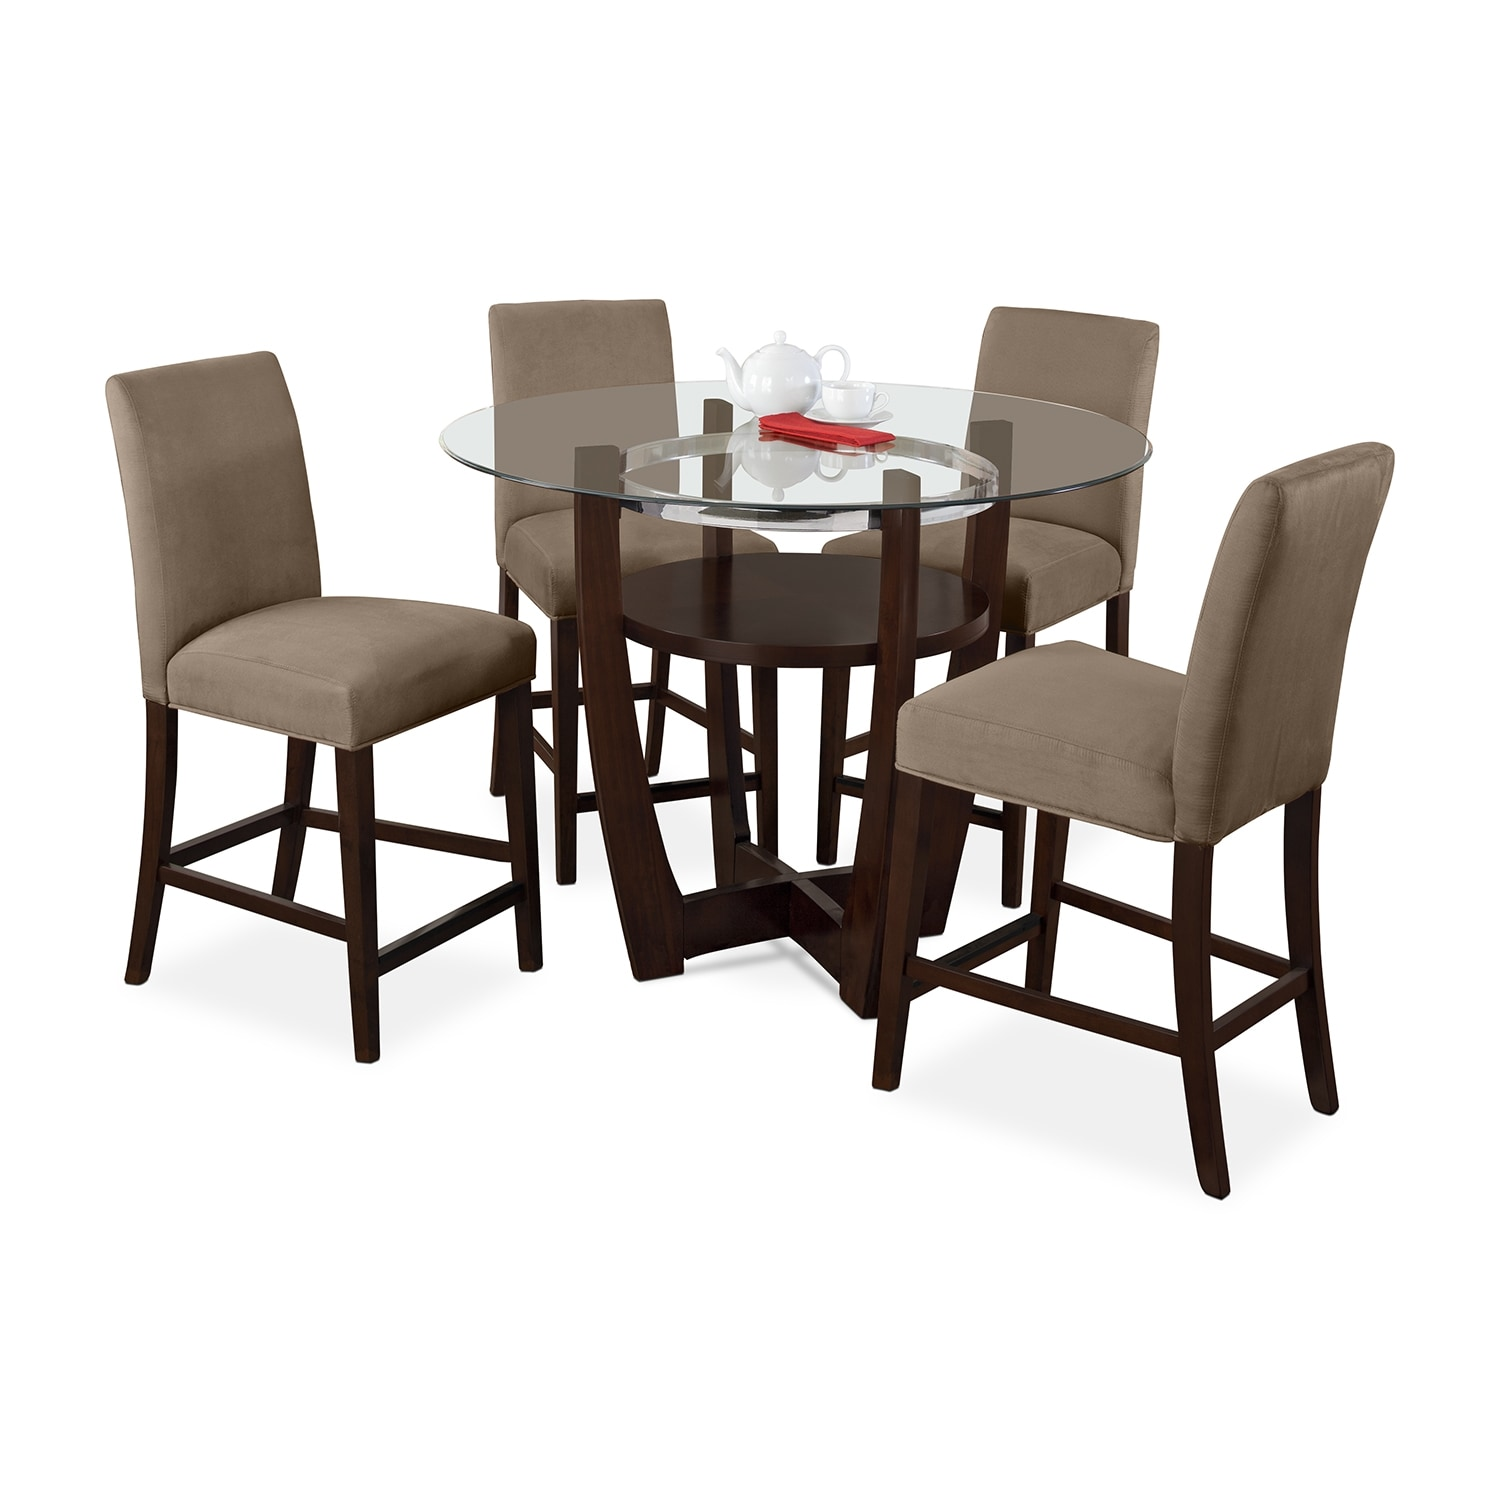 Alcove Counter-Height Dinette with 4 Side Chairs - Beige